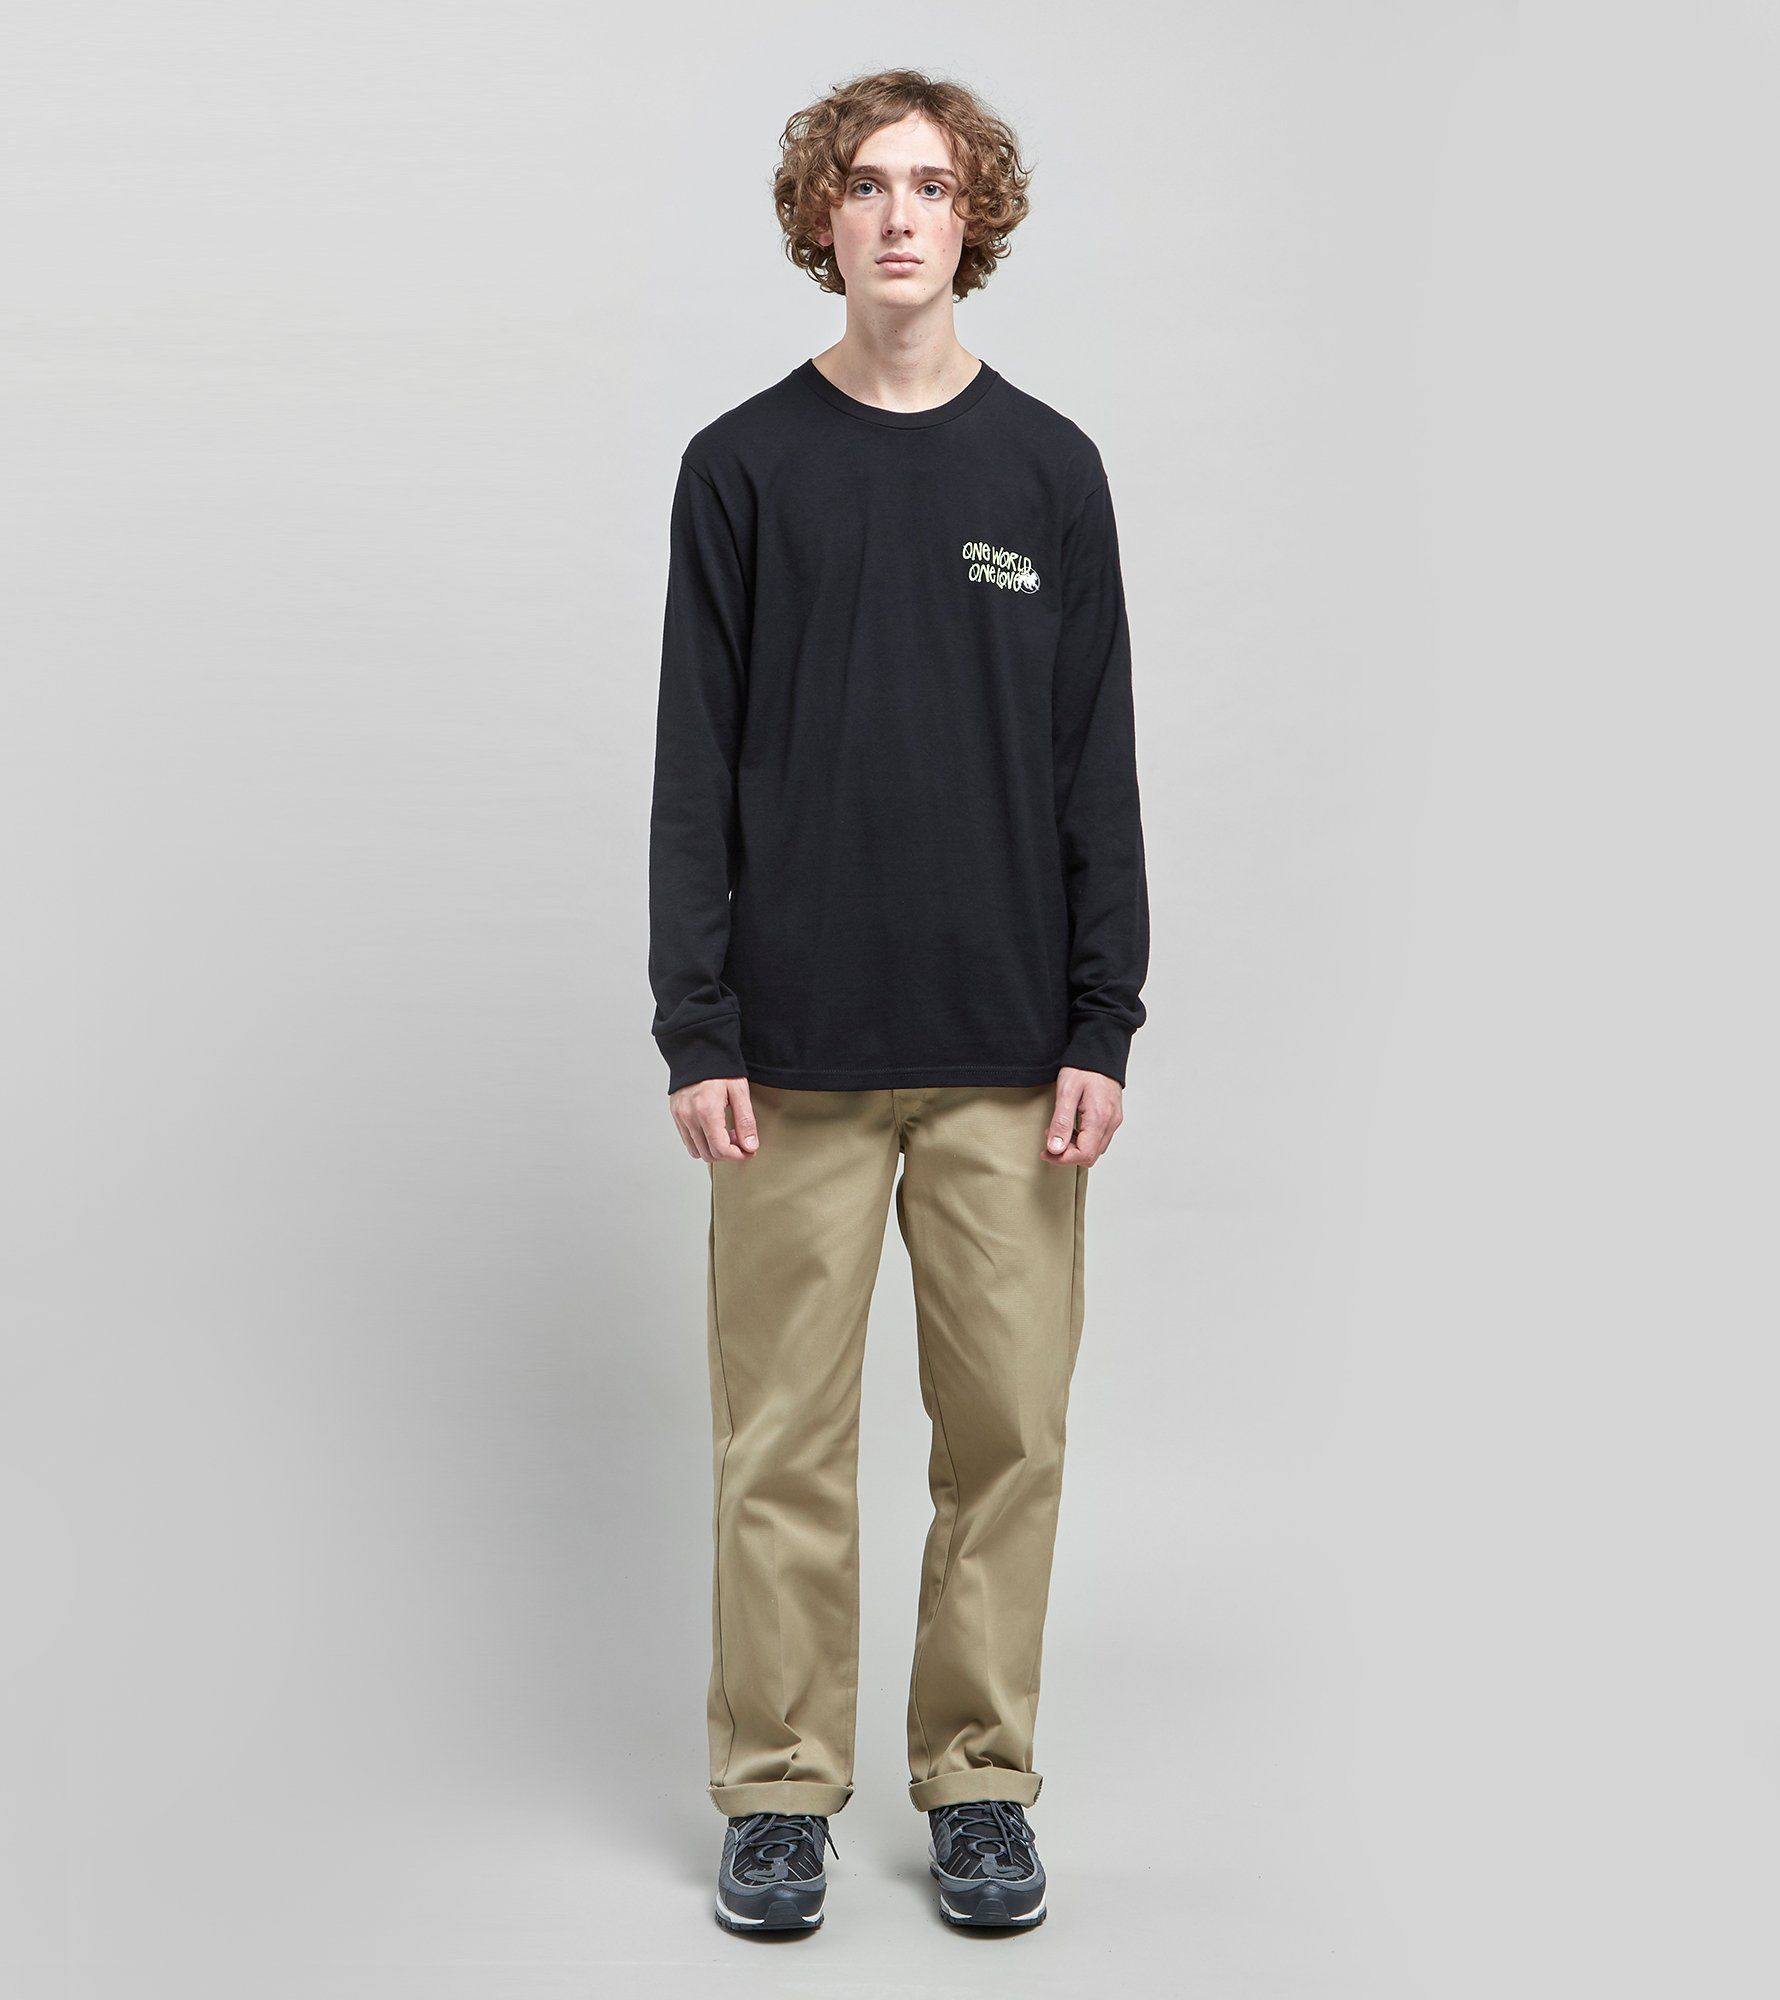 Stussy One World Long Sleeved T-Shirt